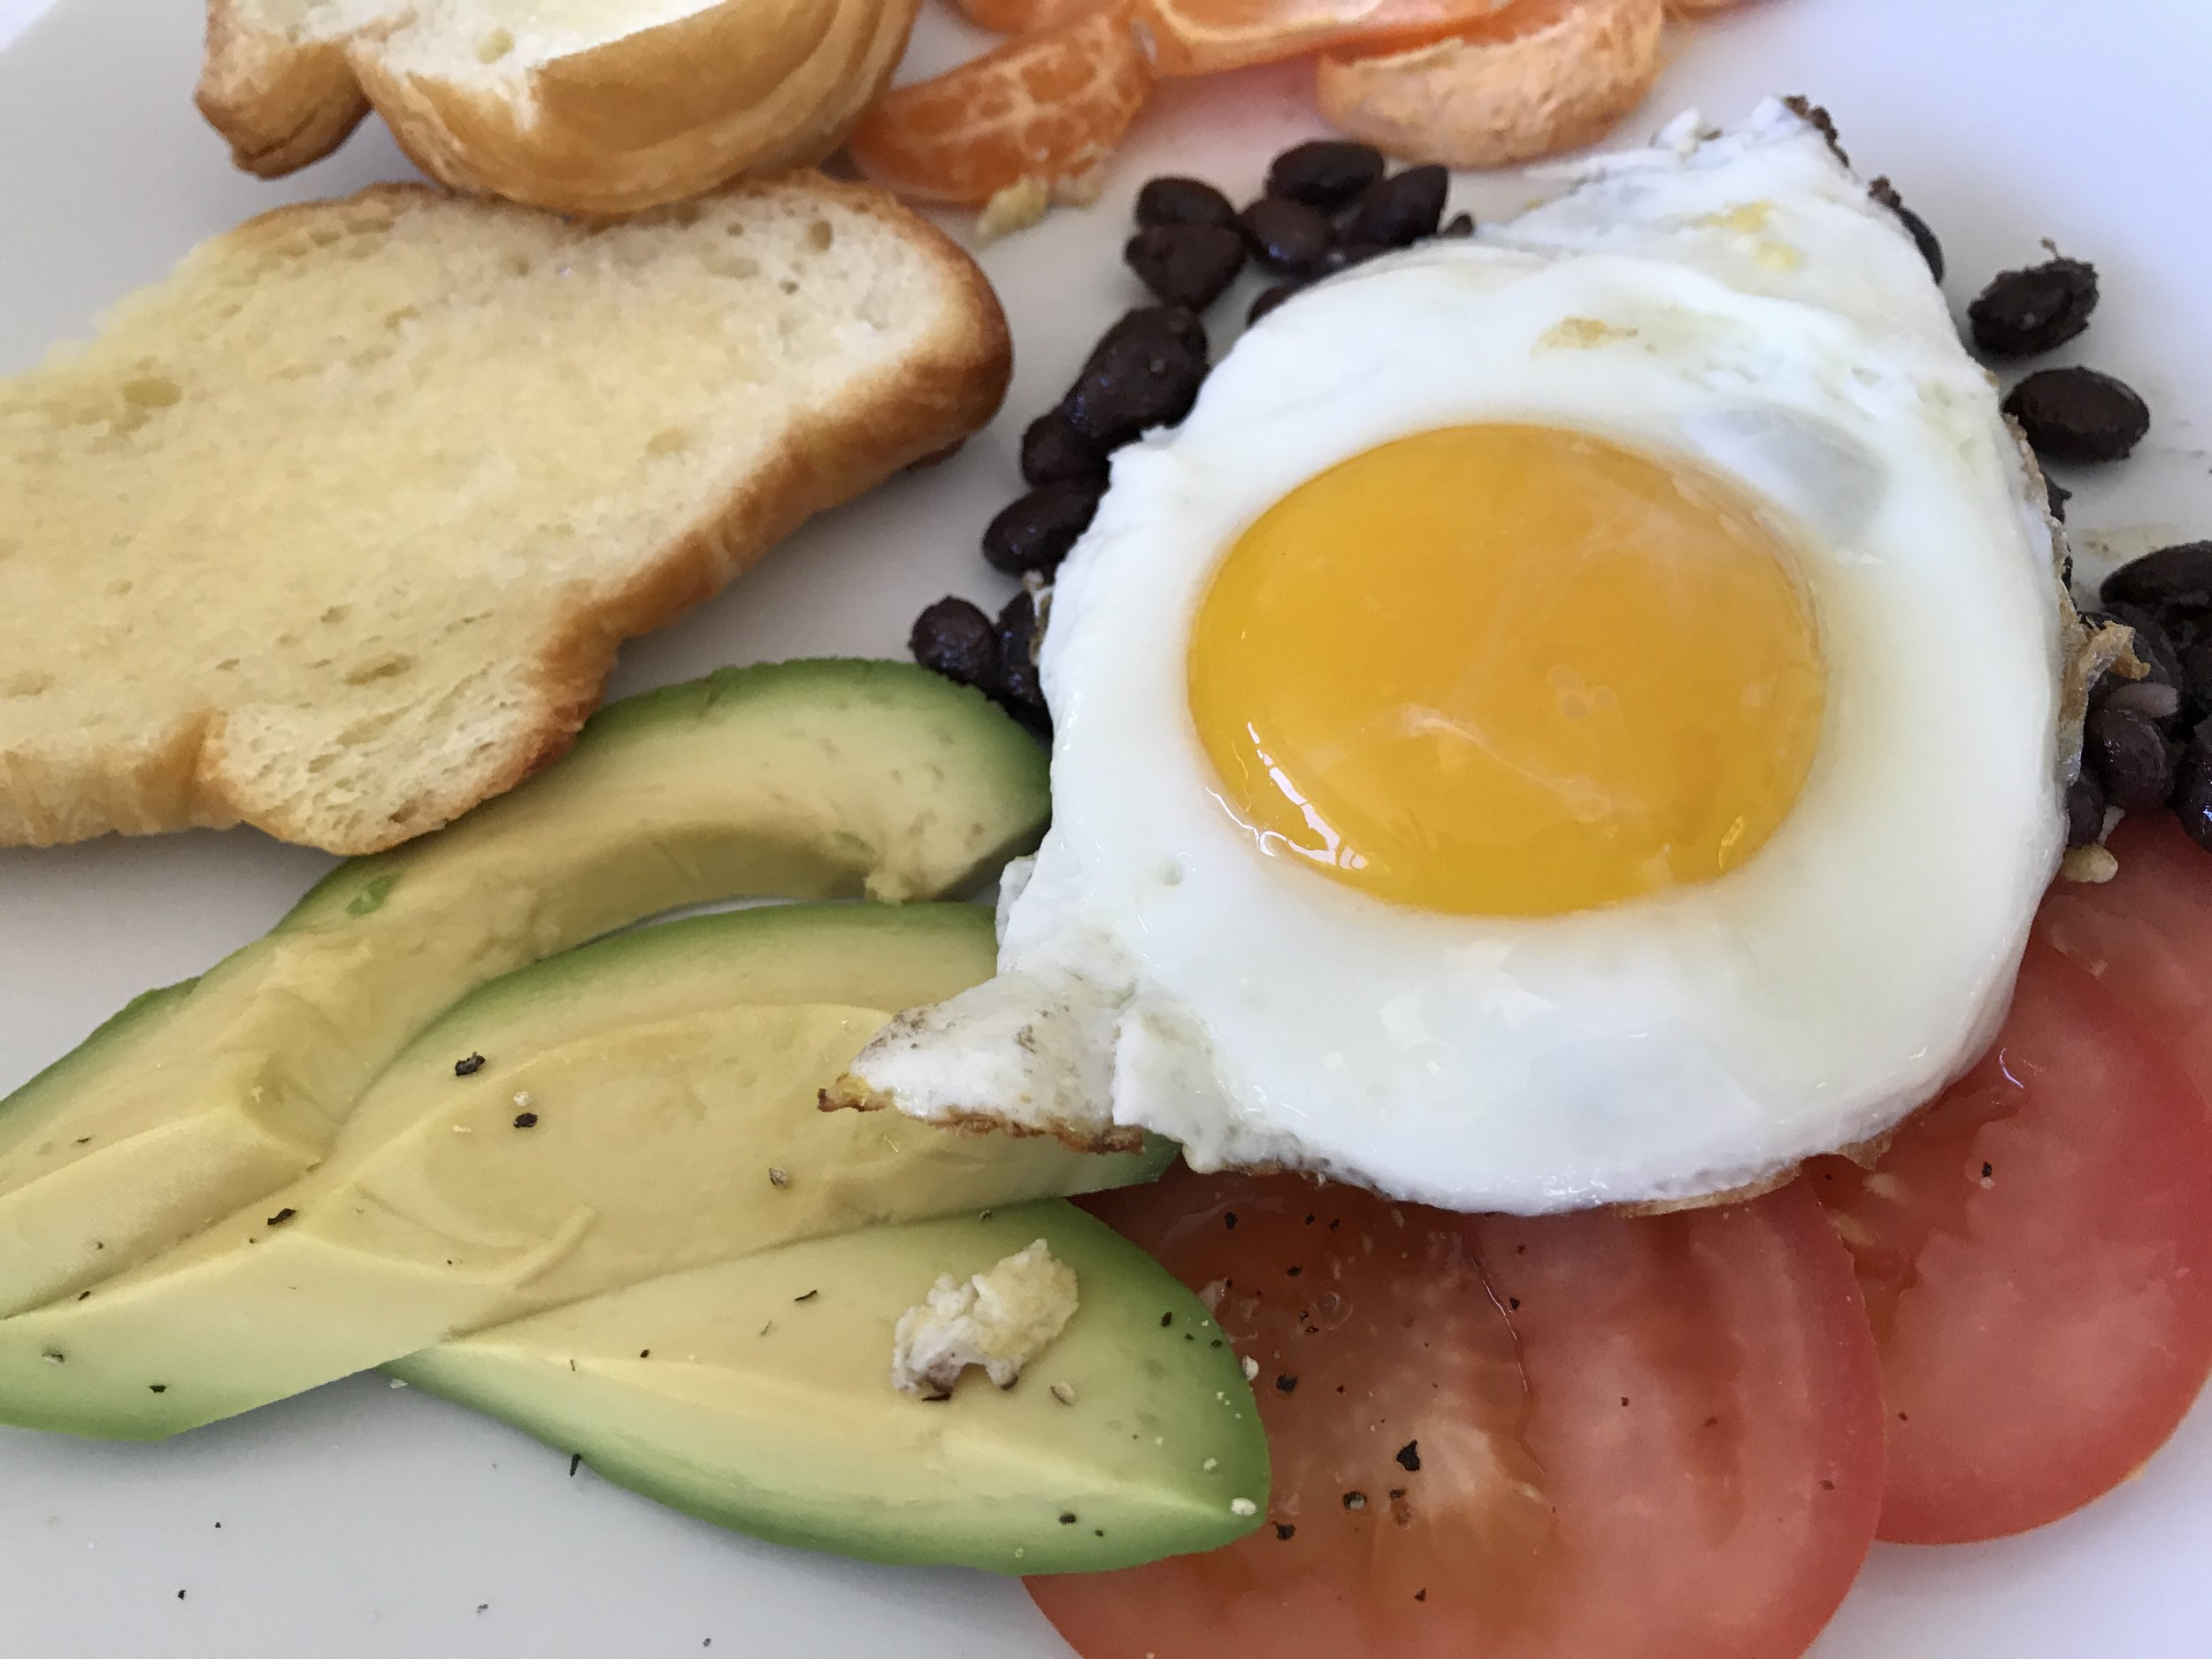 We had a lovley breakfast Saturday. Avocado, croissant, black beans, tomatos, oranges with a sunny side up egg!